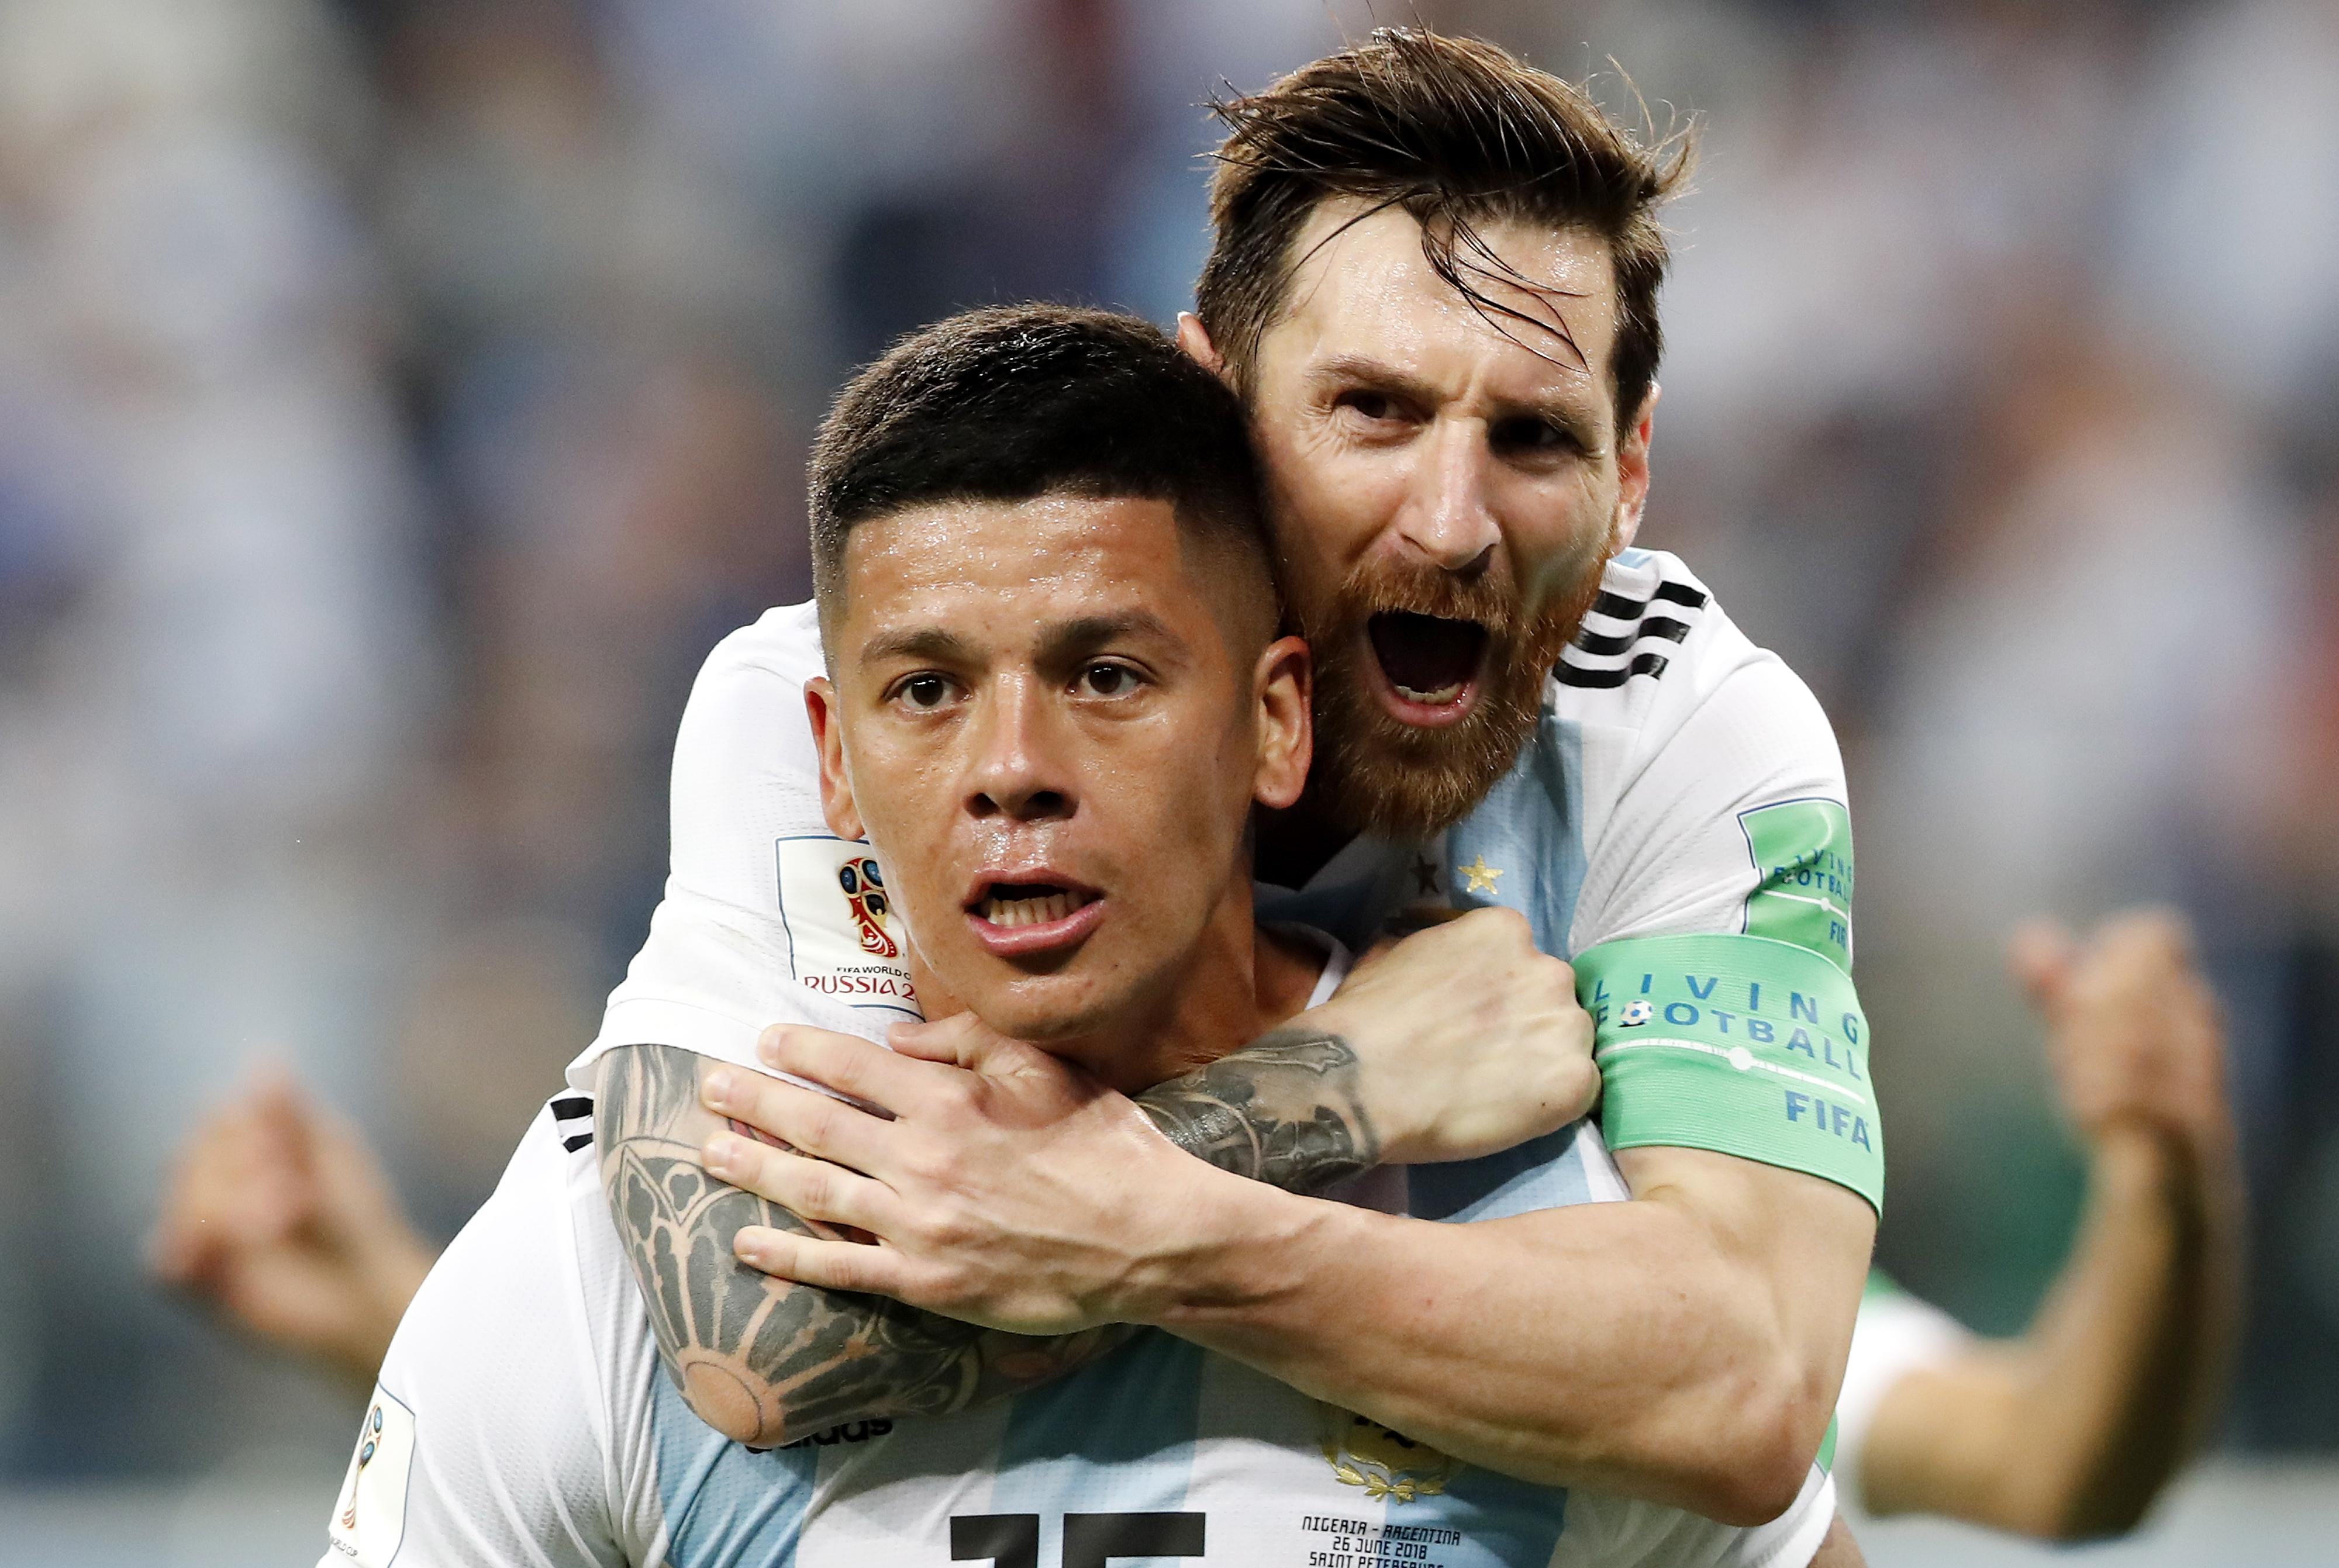 A joke about Messi being carried instead of carrying his team-mates